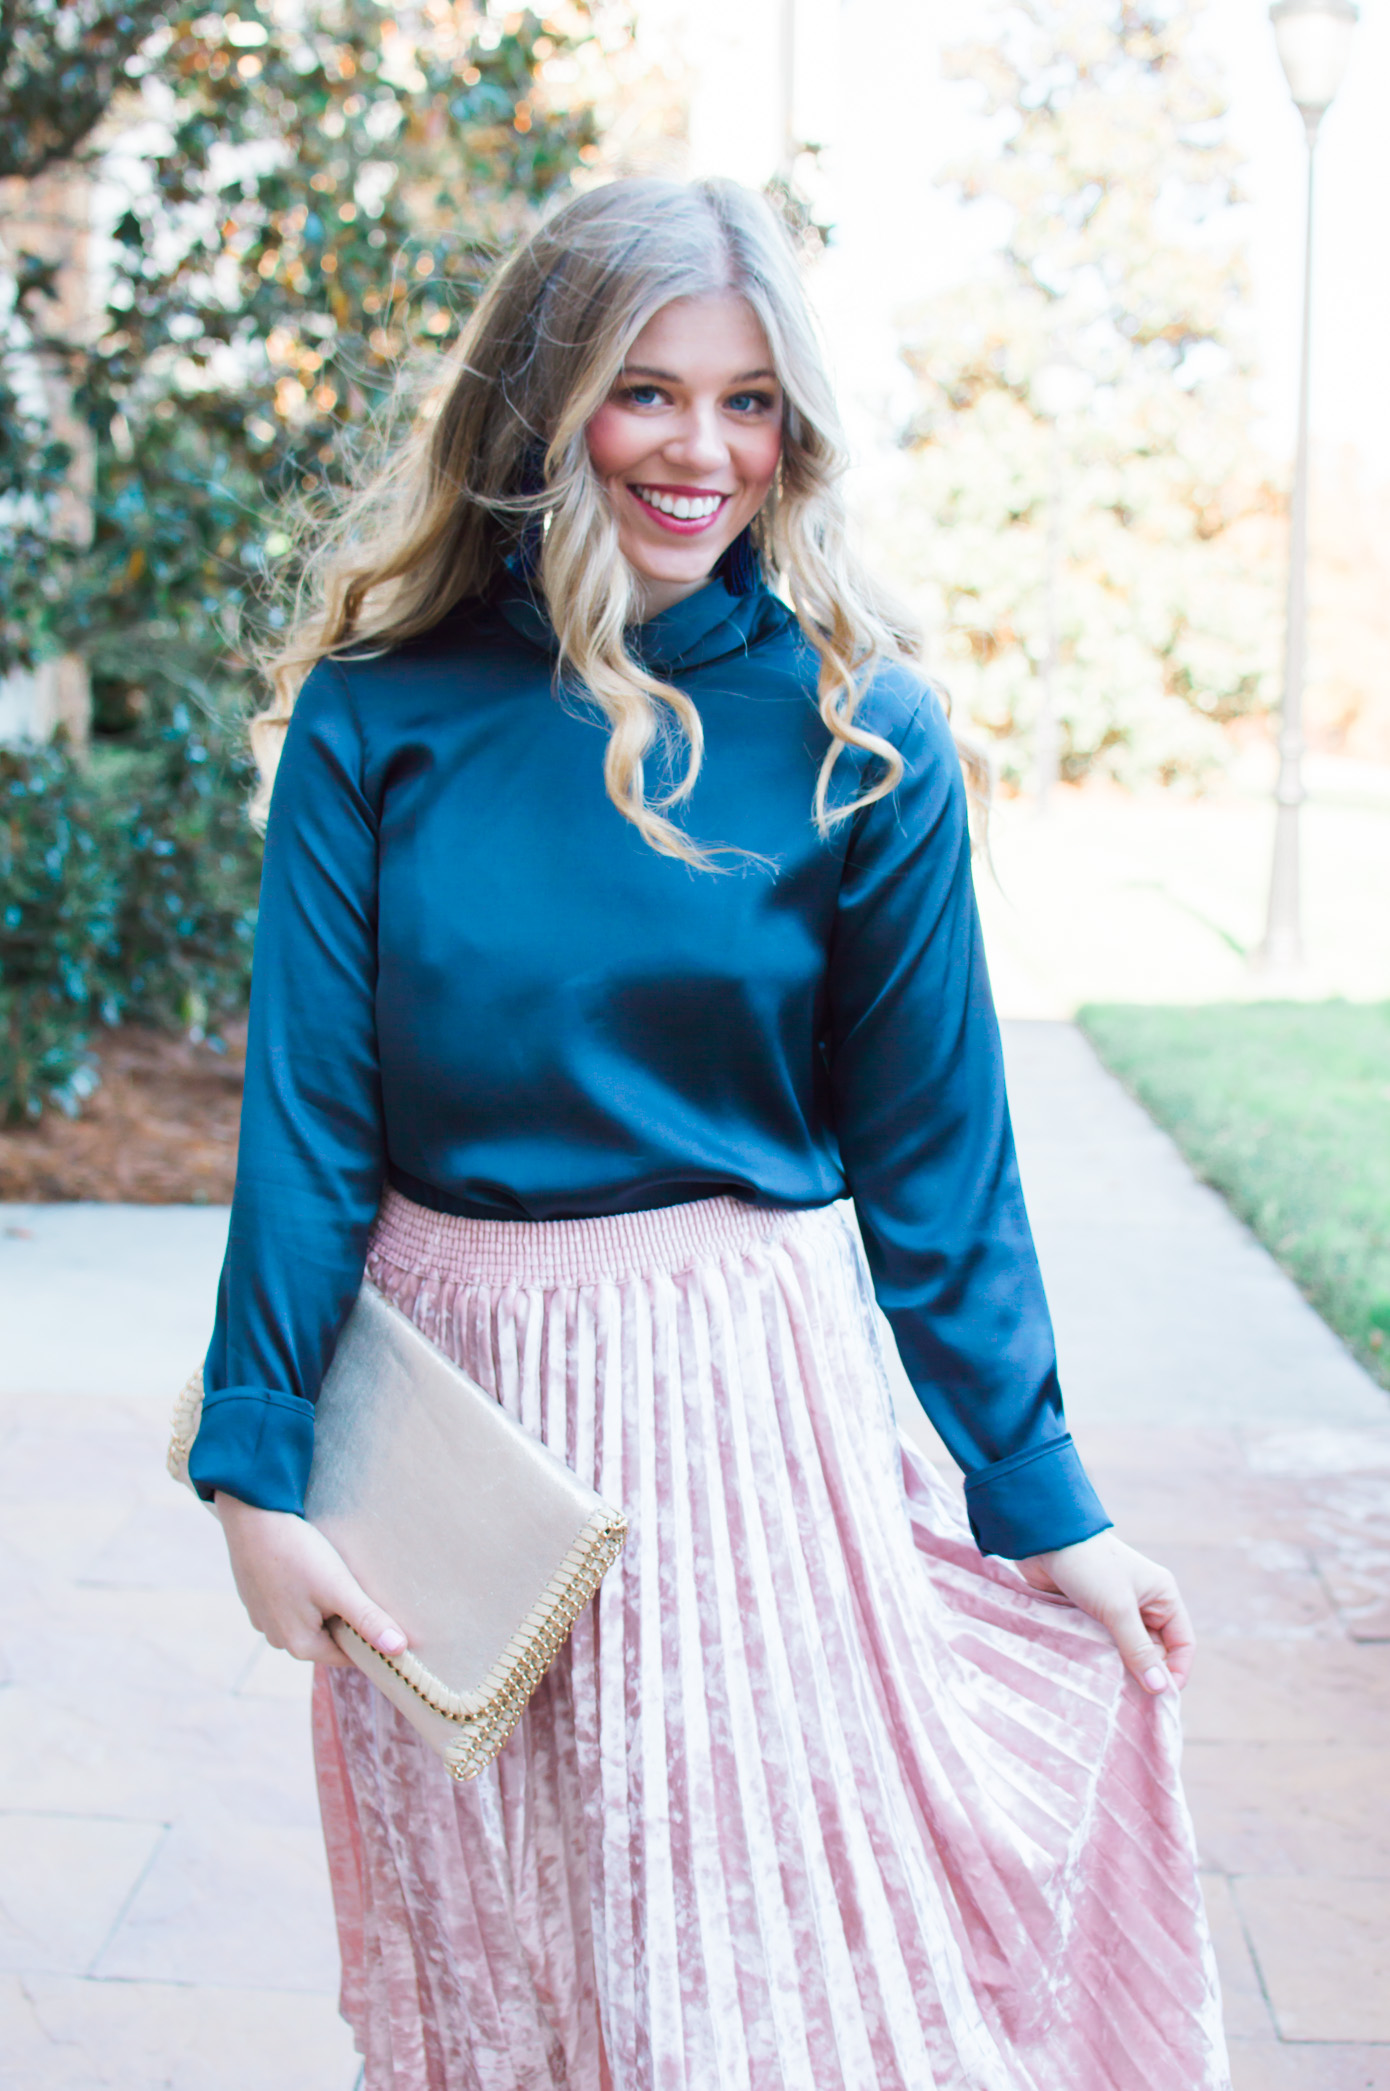 Velvet Midi Skirt | Holiday Party Outfit Idea | Louella Reese Life & Style Blog